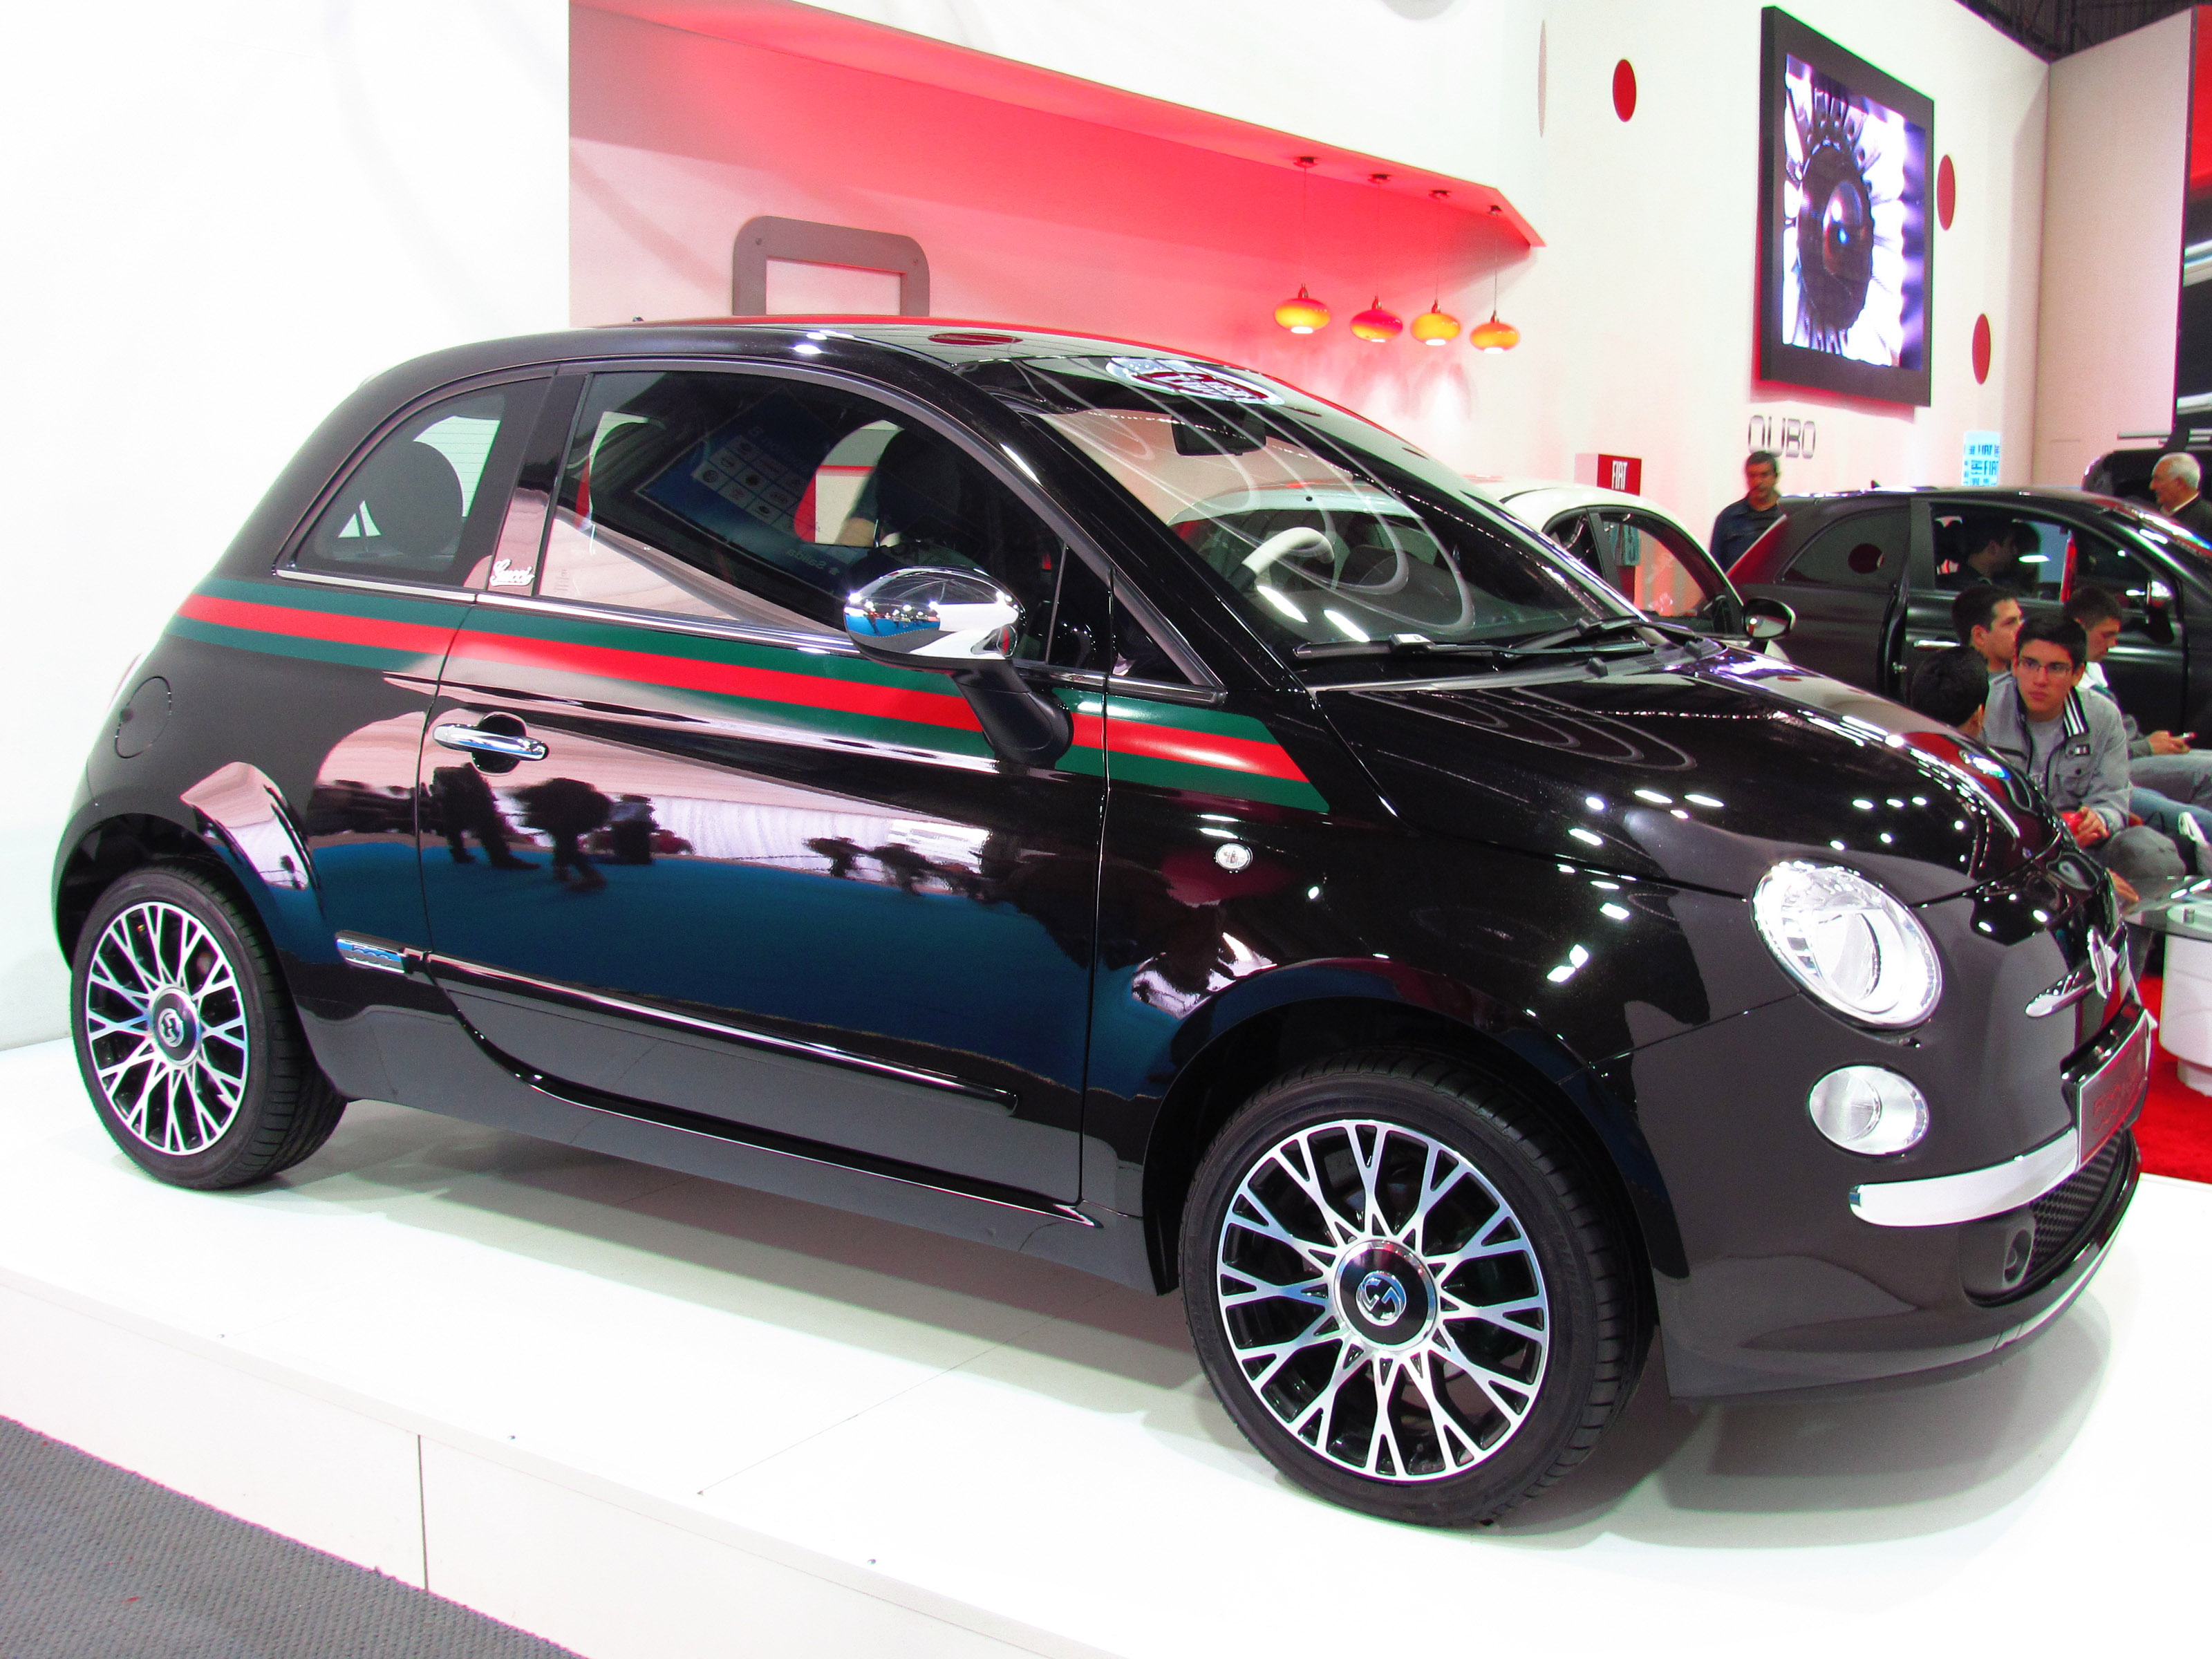 file fiat 500 1 4 gucci 2013 12259731476 jpg wikimedia commons. Black Bedroom Furniture Sets. Home Design Ideas